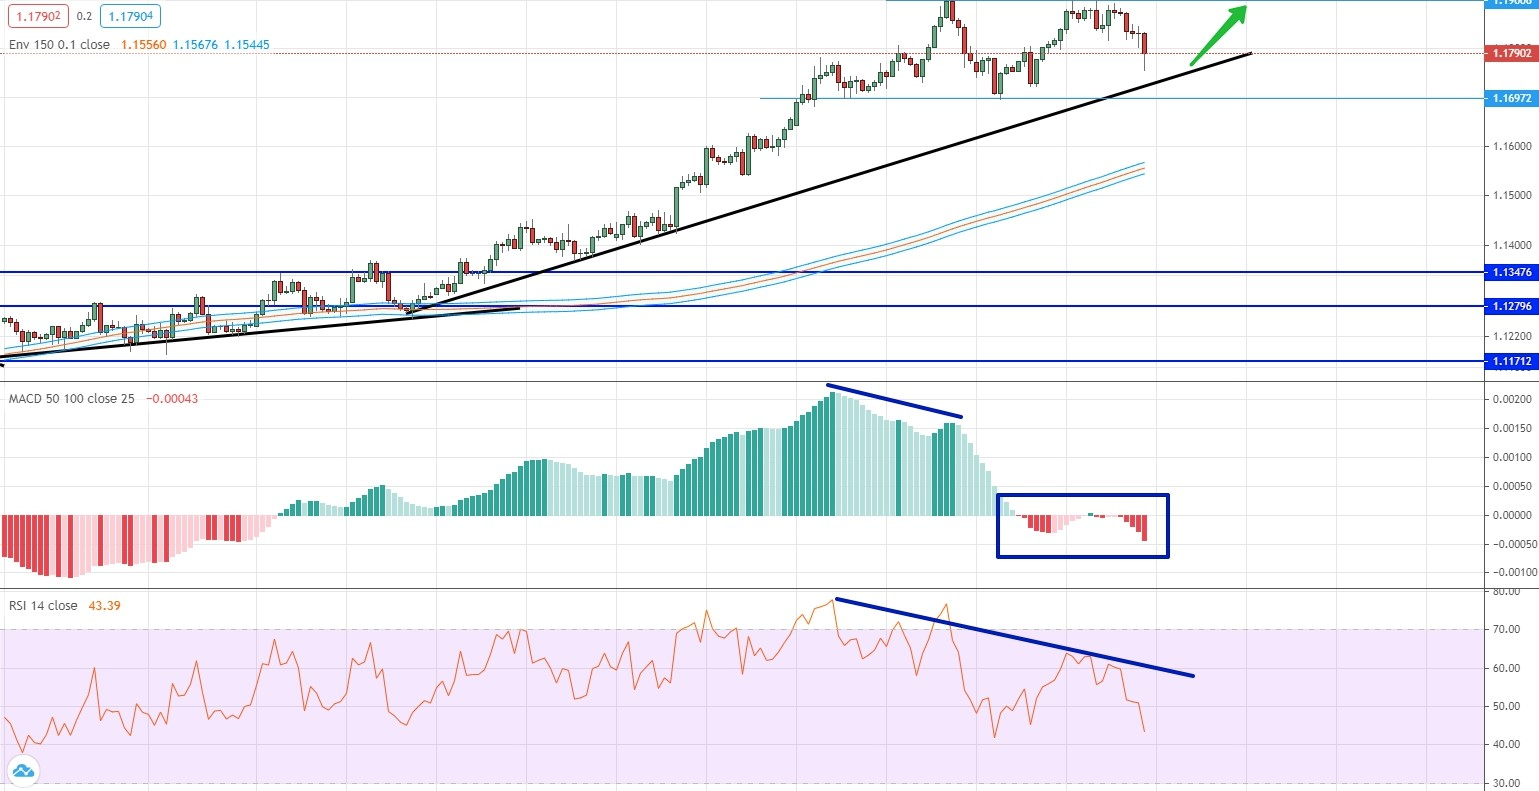 analysis of EUR/CHF by moving averages, RSI and MACD